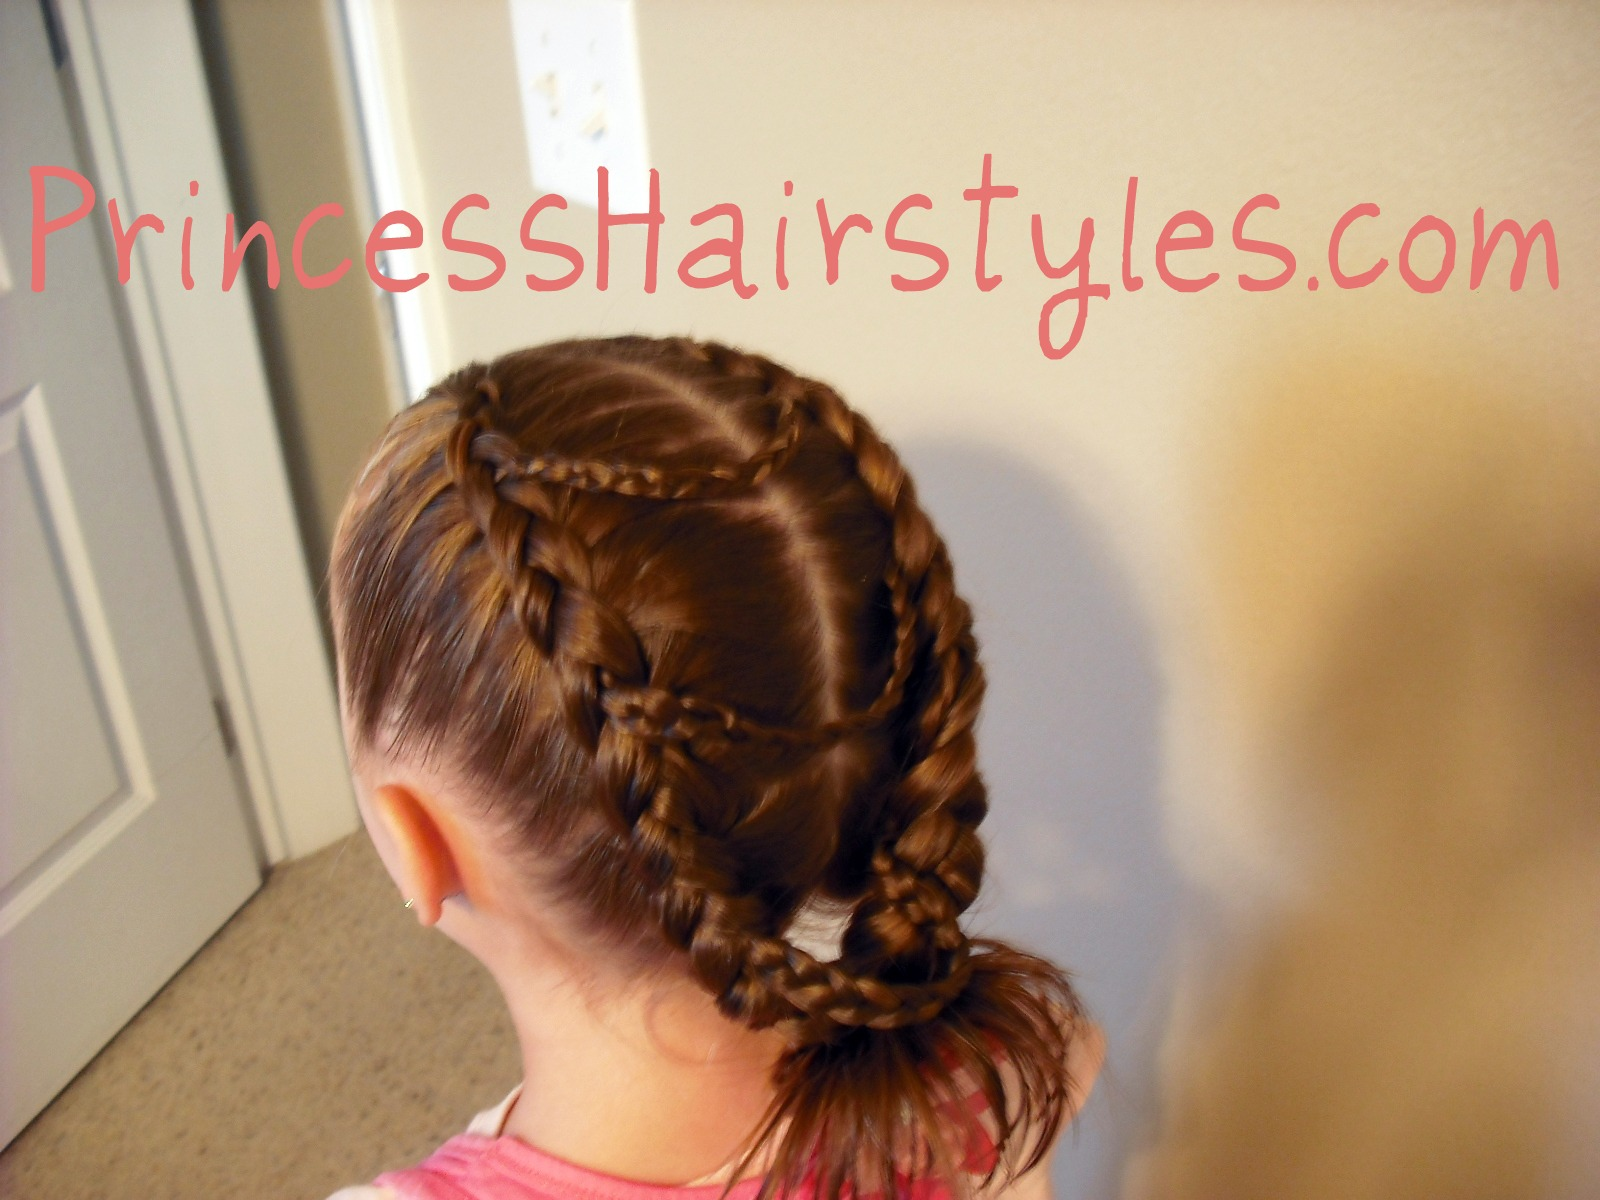 This Princess Hair Style Is Relatively Easy To Make As Long As You